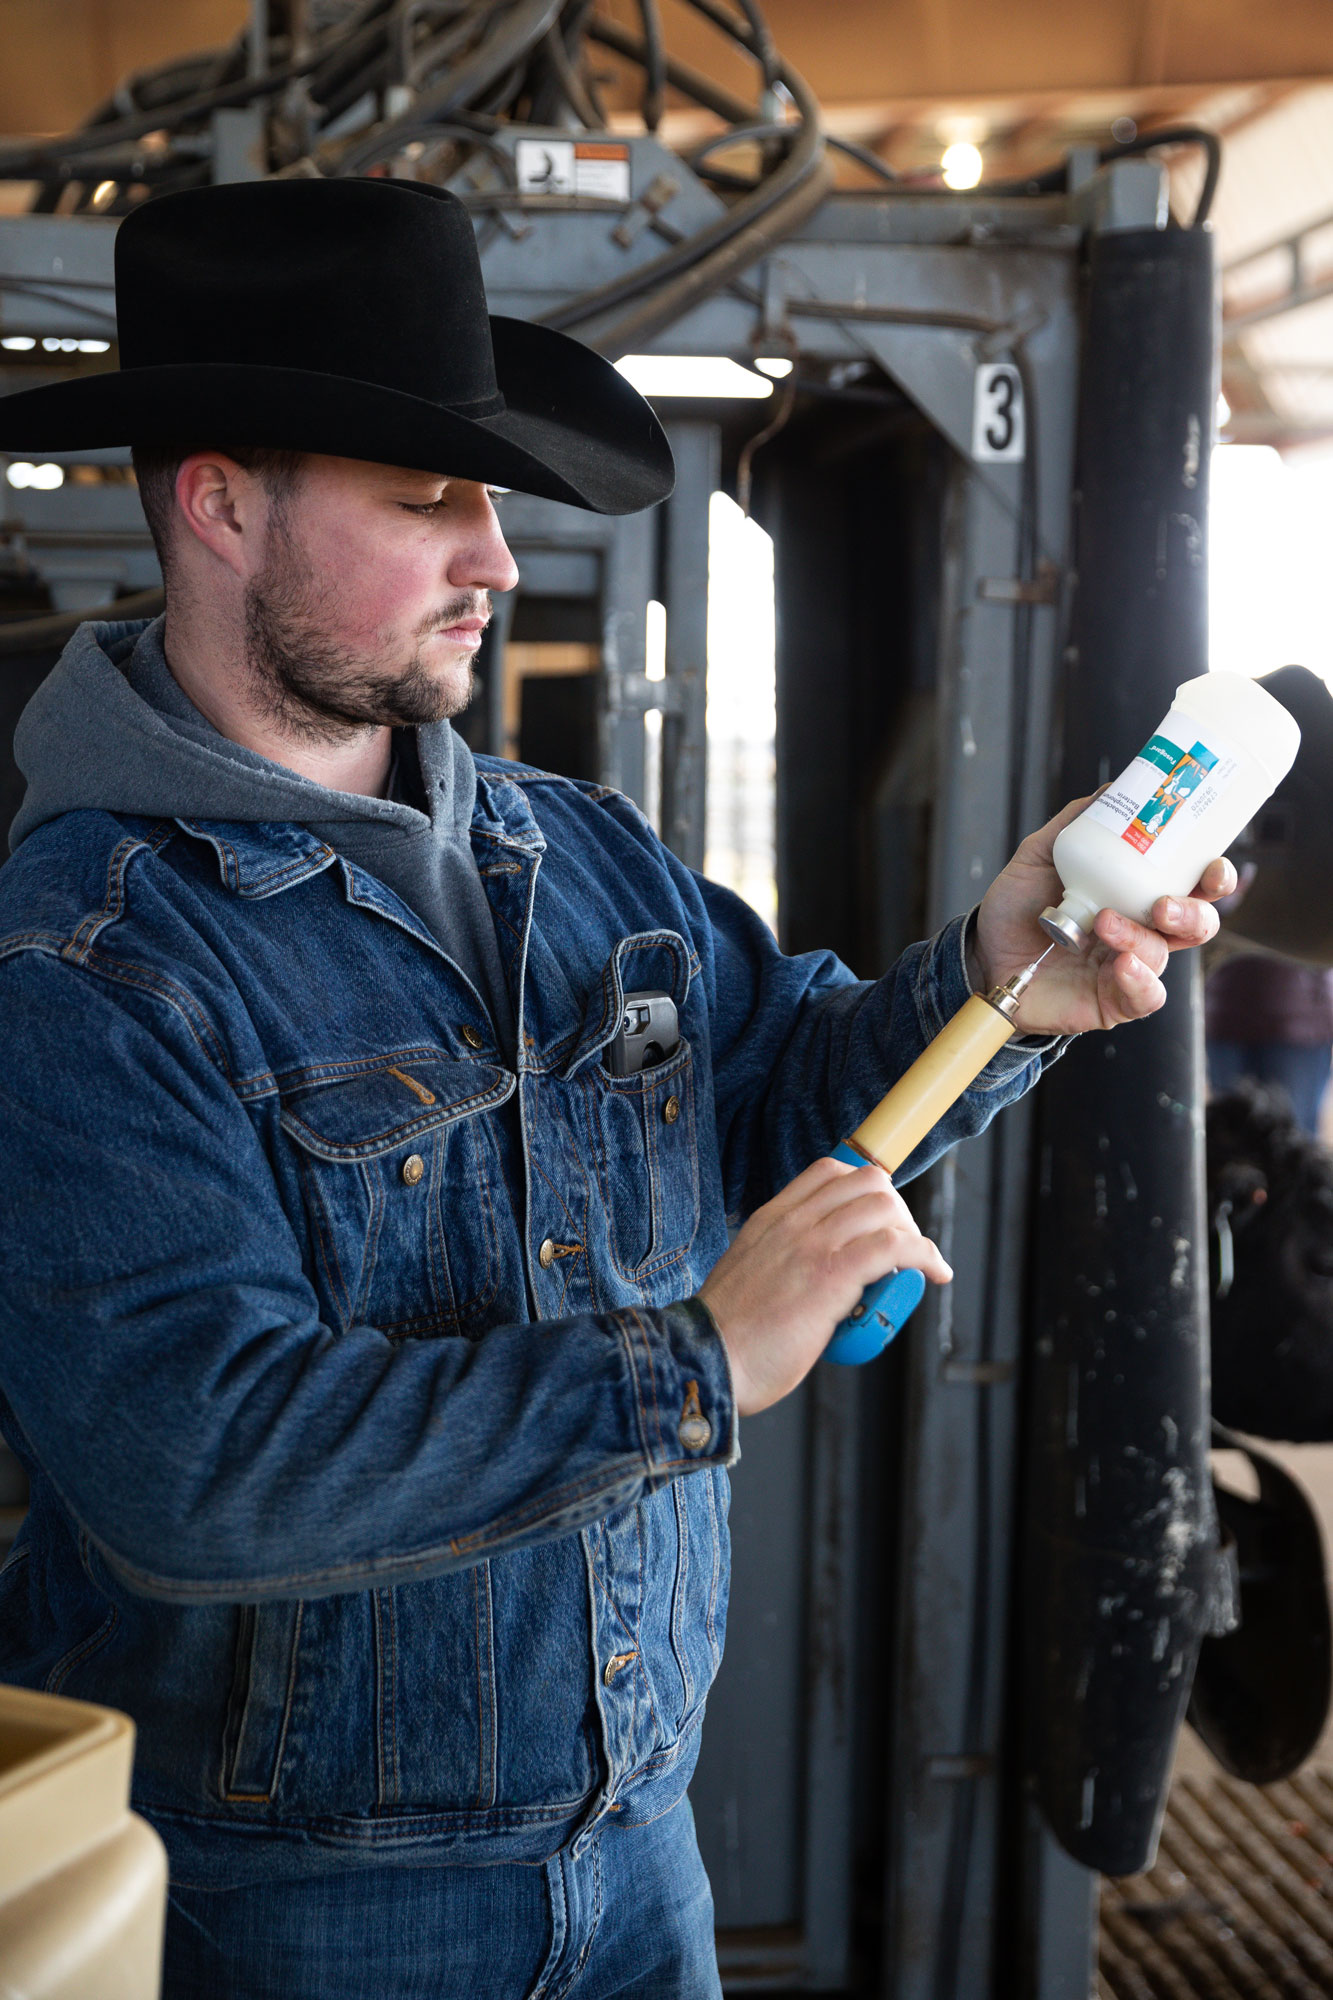 Rancher working with antibiotic syringe.